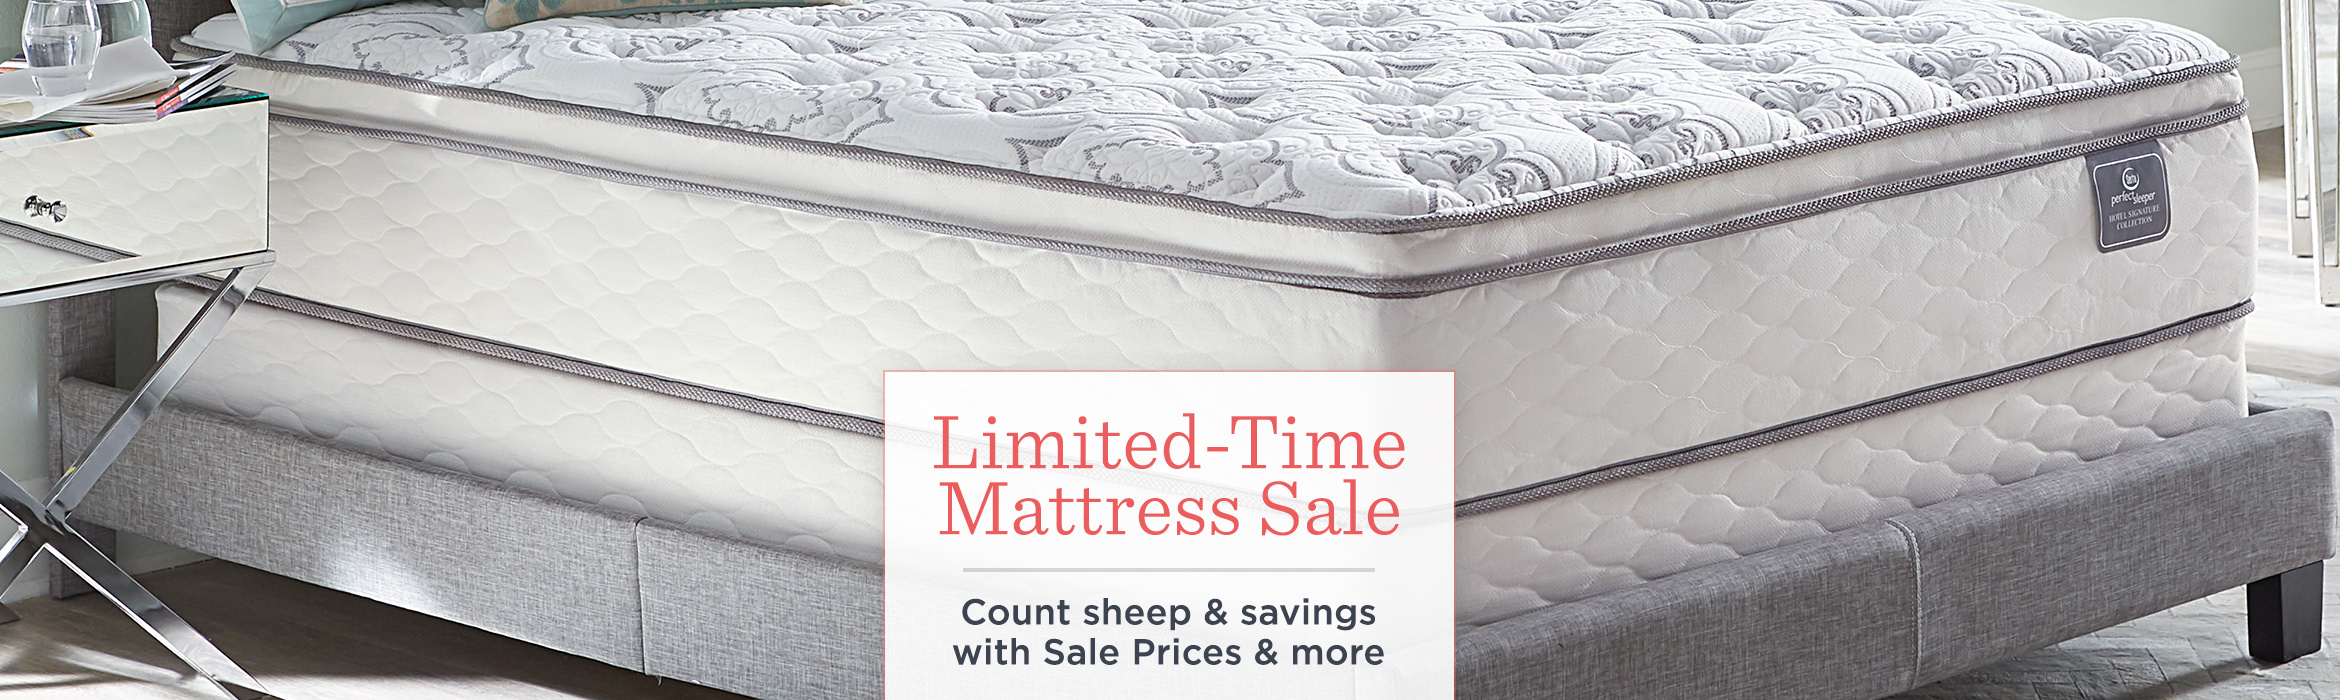 Limited Time Mattress Count Sheep Savings With Prices More